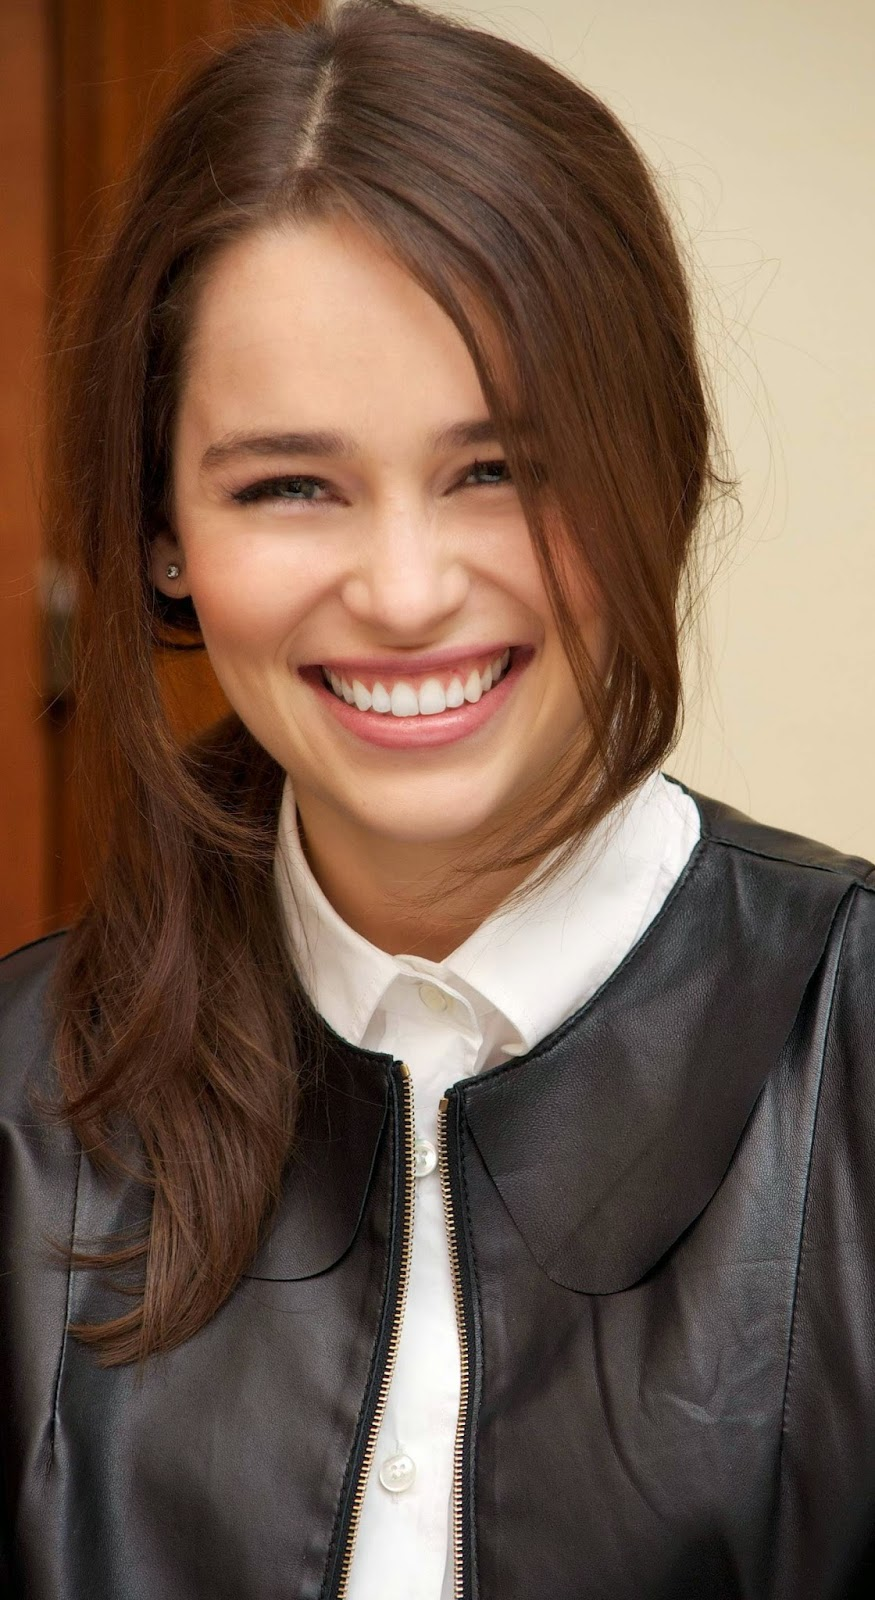 Holly earl cute images